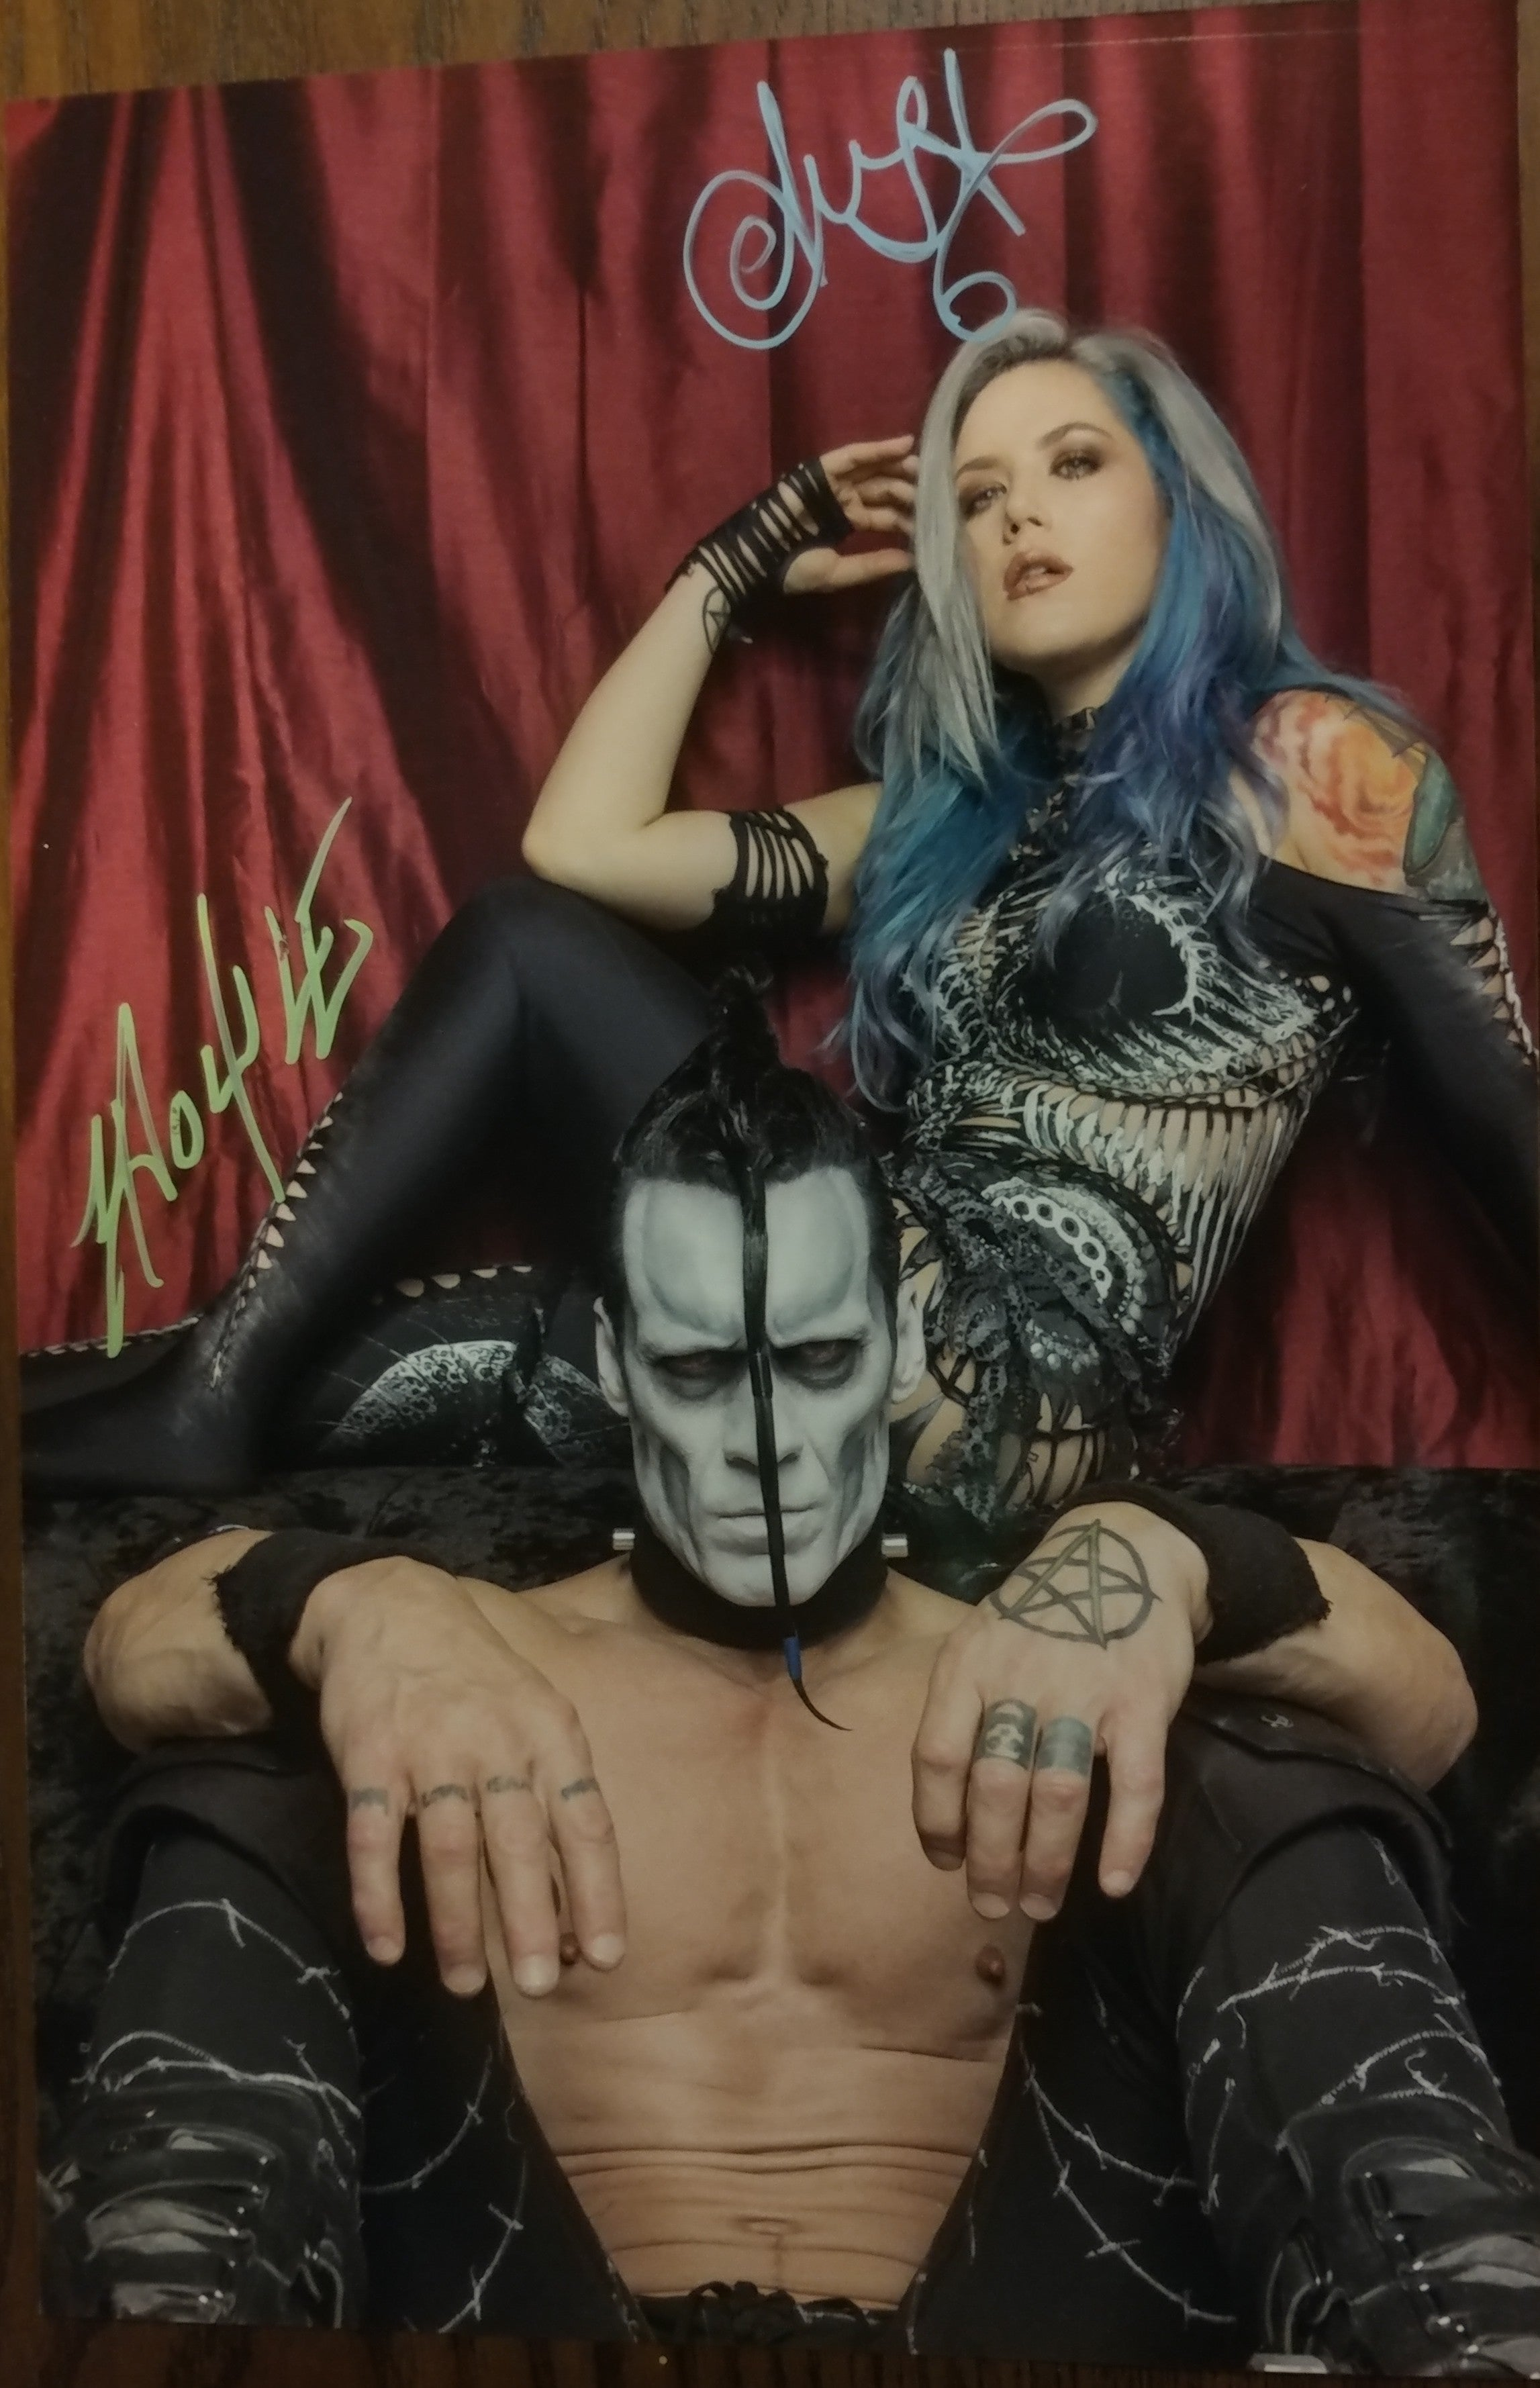 Alissa and Doyle - Beast Throne signed 8x12 (damaged)